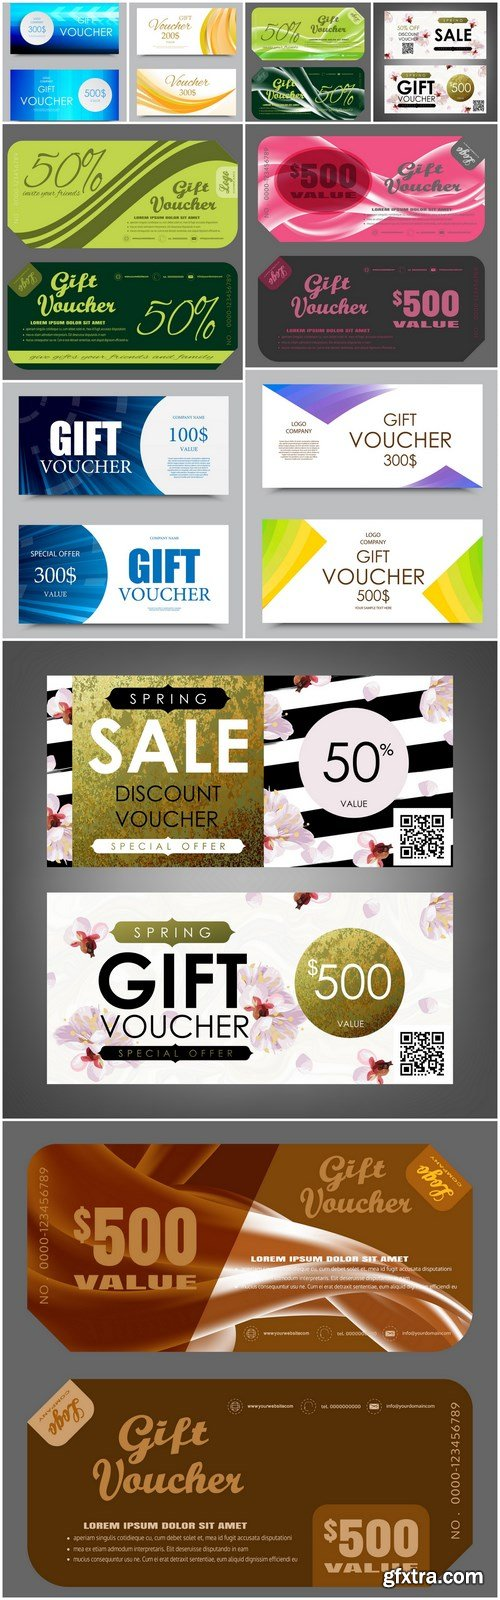 Gift Voucher Collection #33 - 10 Vector